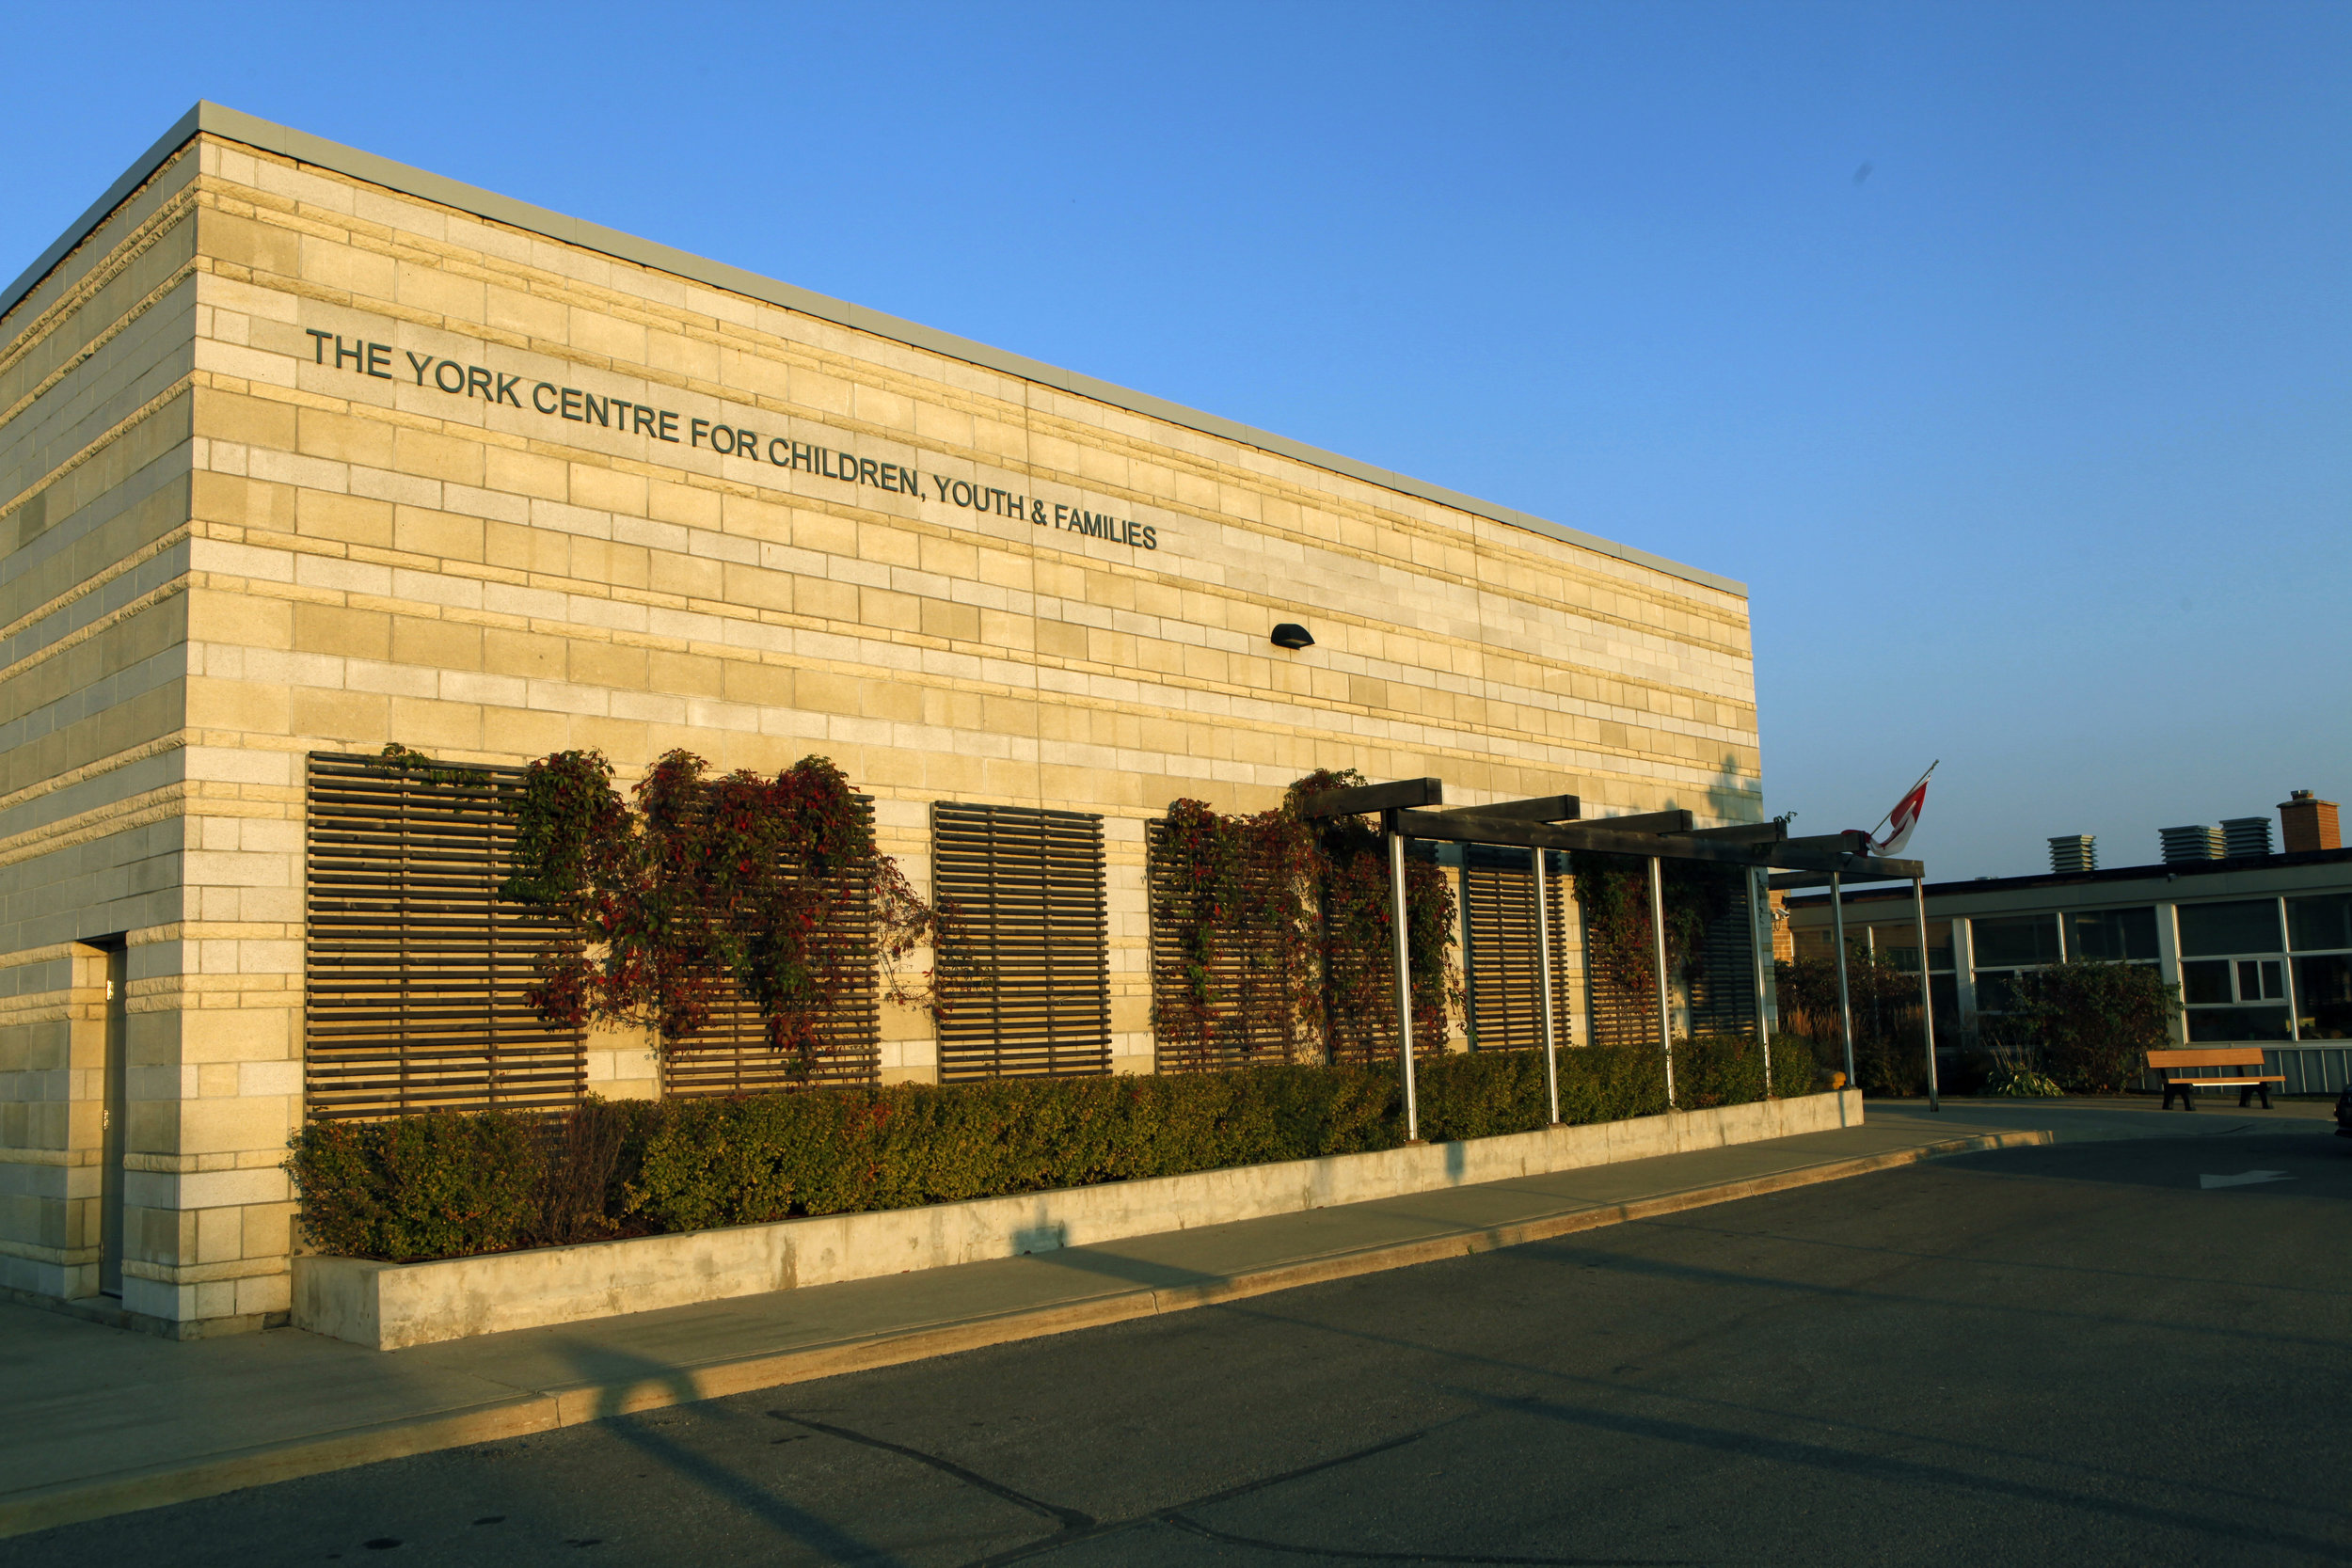 THE YORK CENTRE